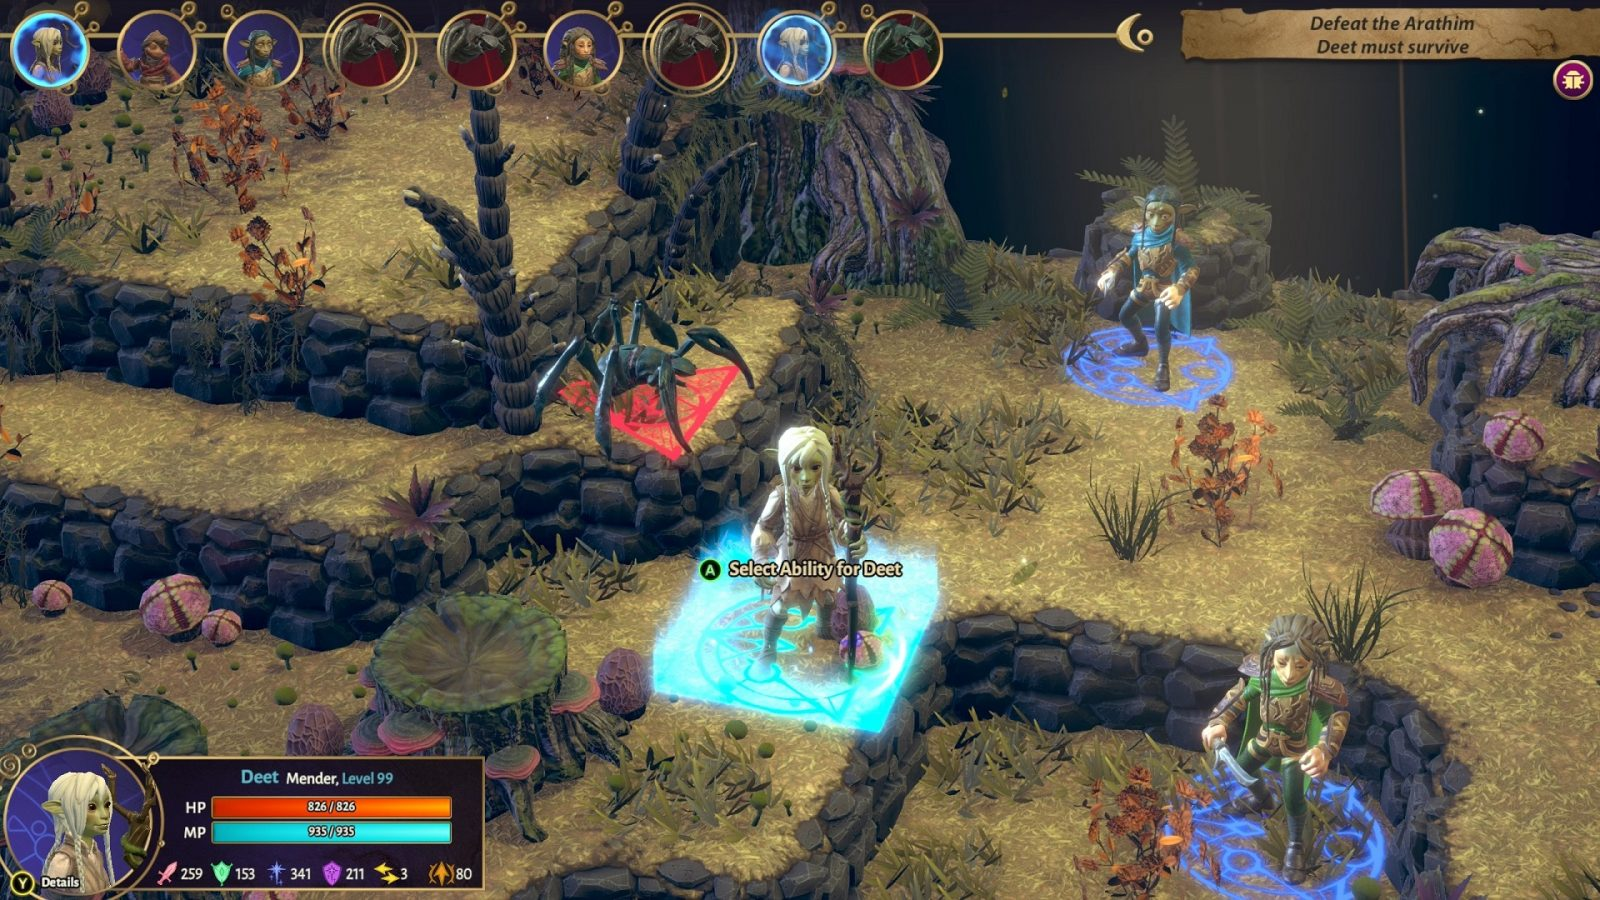 The Dark Crystal: Age of Resistance Tactics Launches February 4, 2020